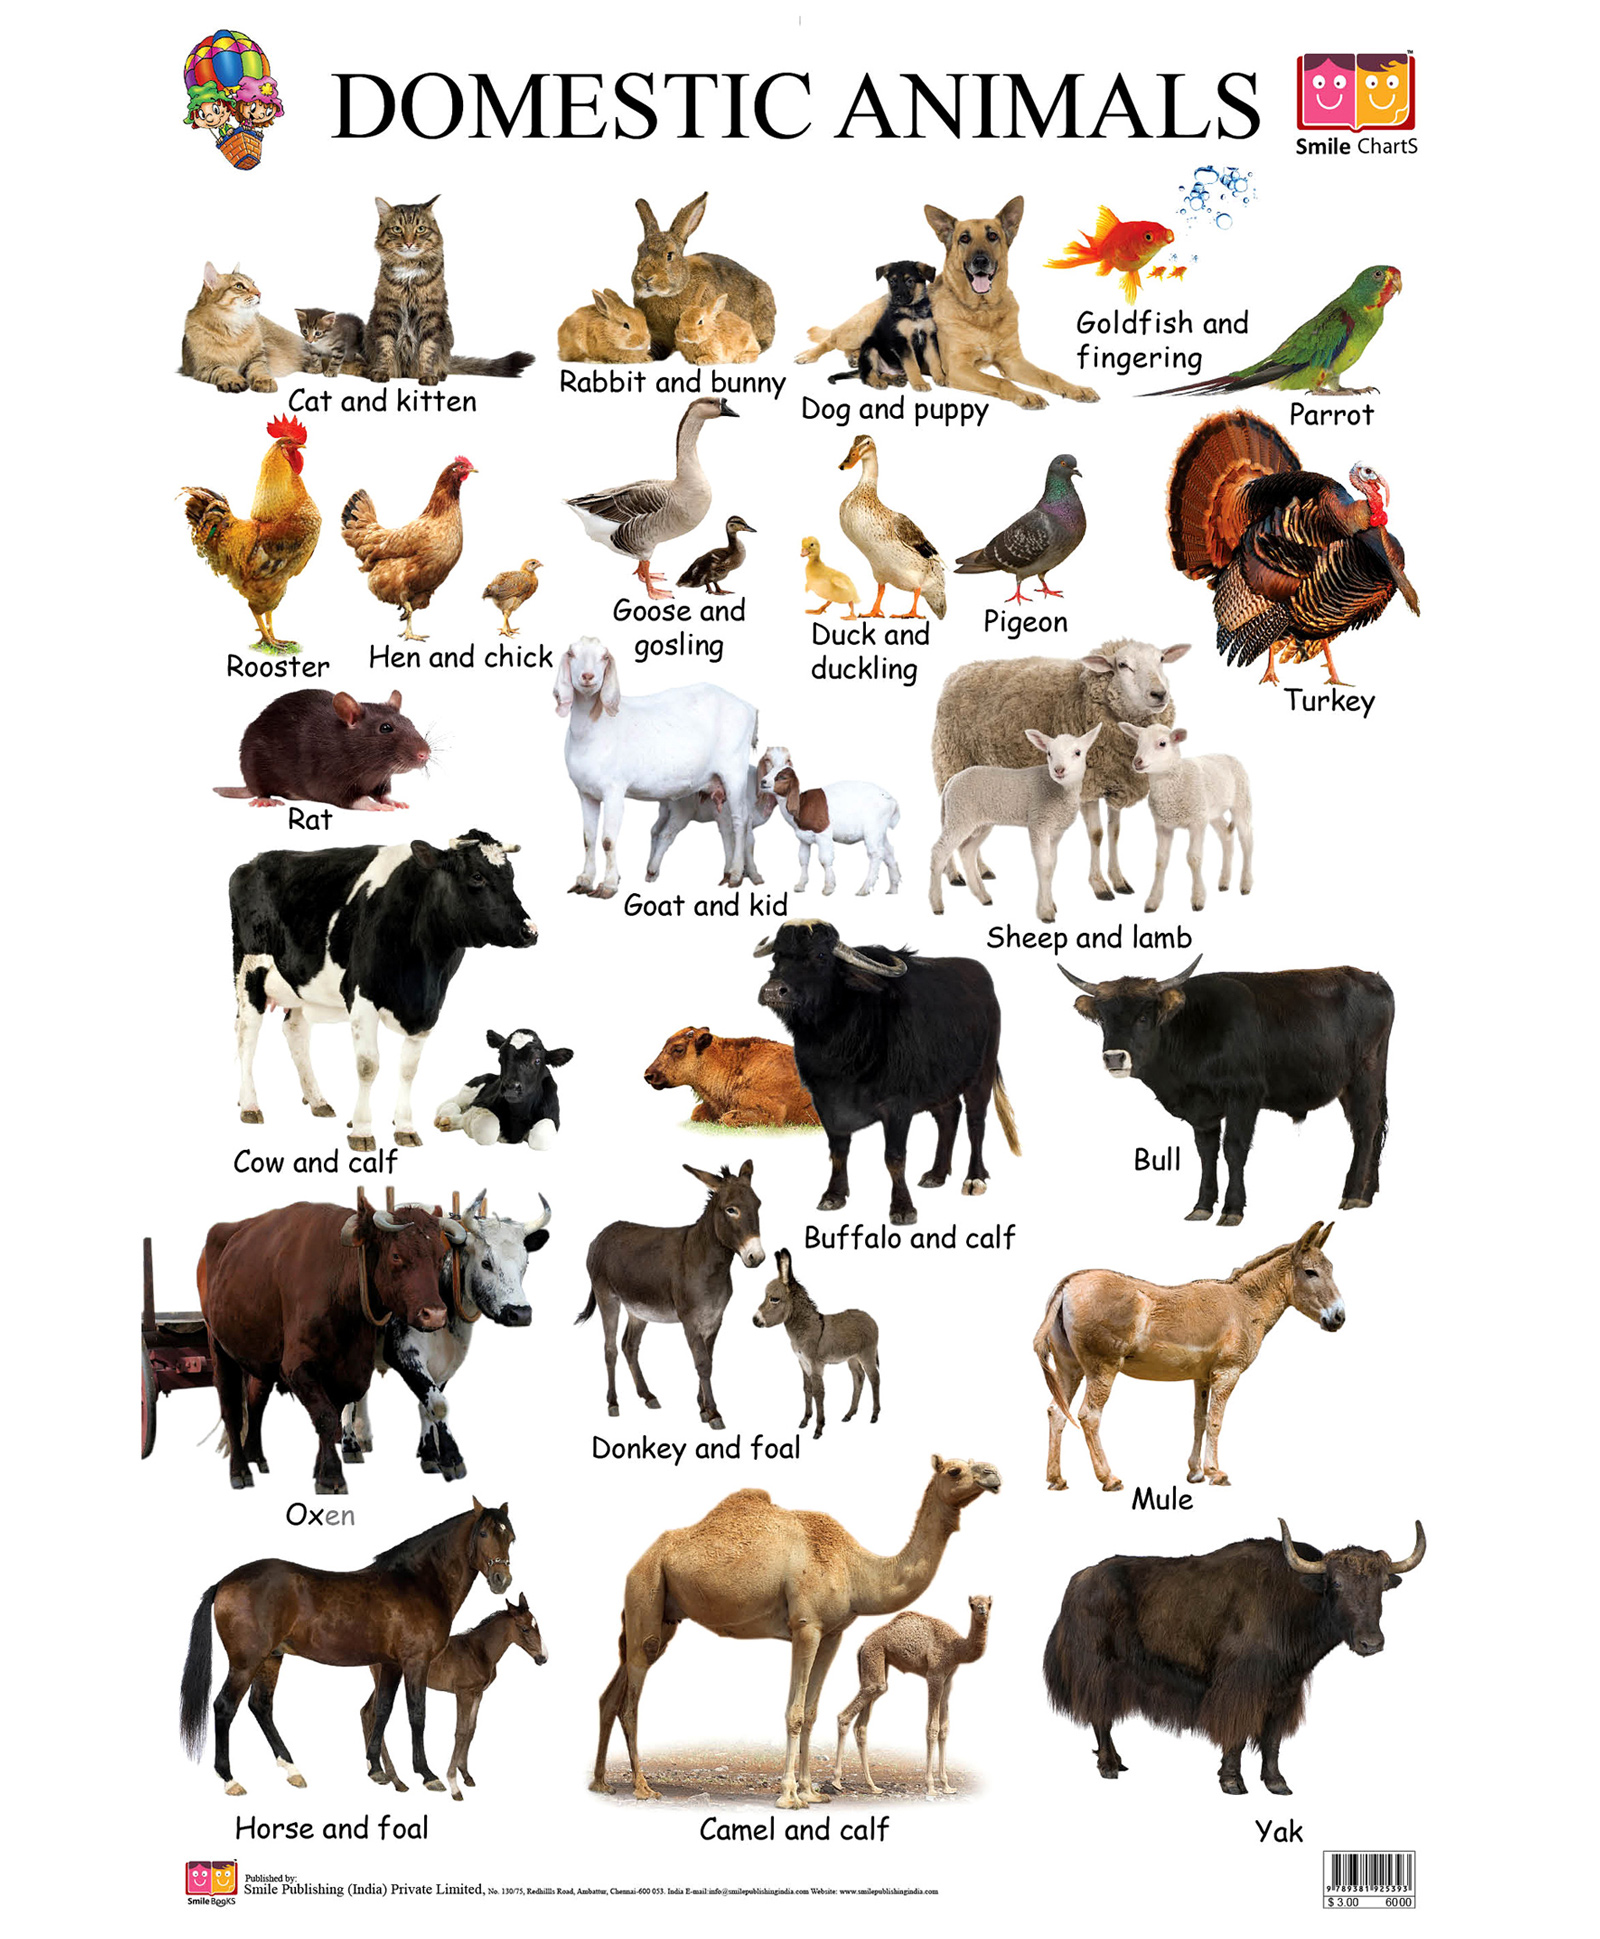 essay about domestic animals and their uses What are some uses of domestic animals update cancel answer wiki 5 answers what are some examples of domestic animals and their uses is a fish a domestic.